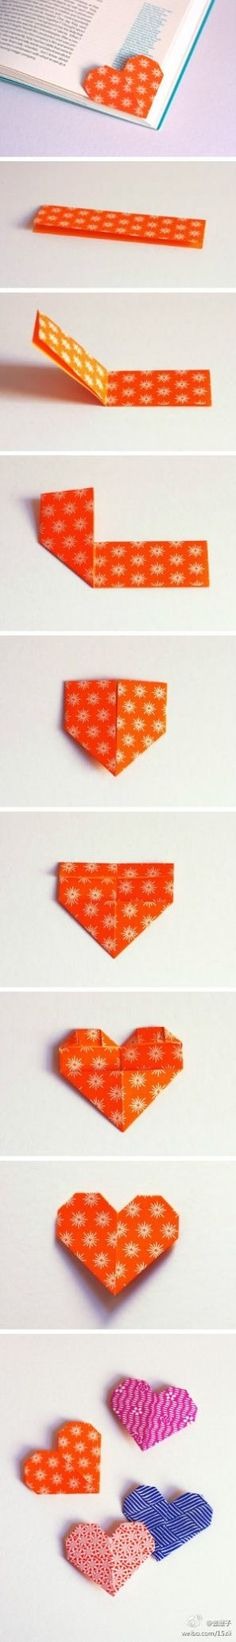 Jadi ingat jaman sekolah :) - How to Make an Origami Bookmark by howaboutorange via saifou http://howaboutorange.blogspot.com/2013/01/heart-shaped-page-marker-origami.htm #DIY #Origami #Bookmark #Heart